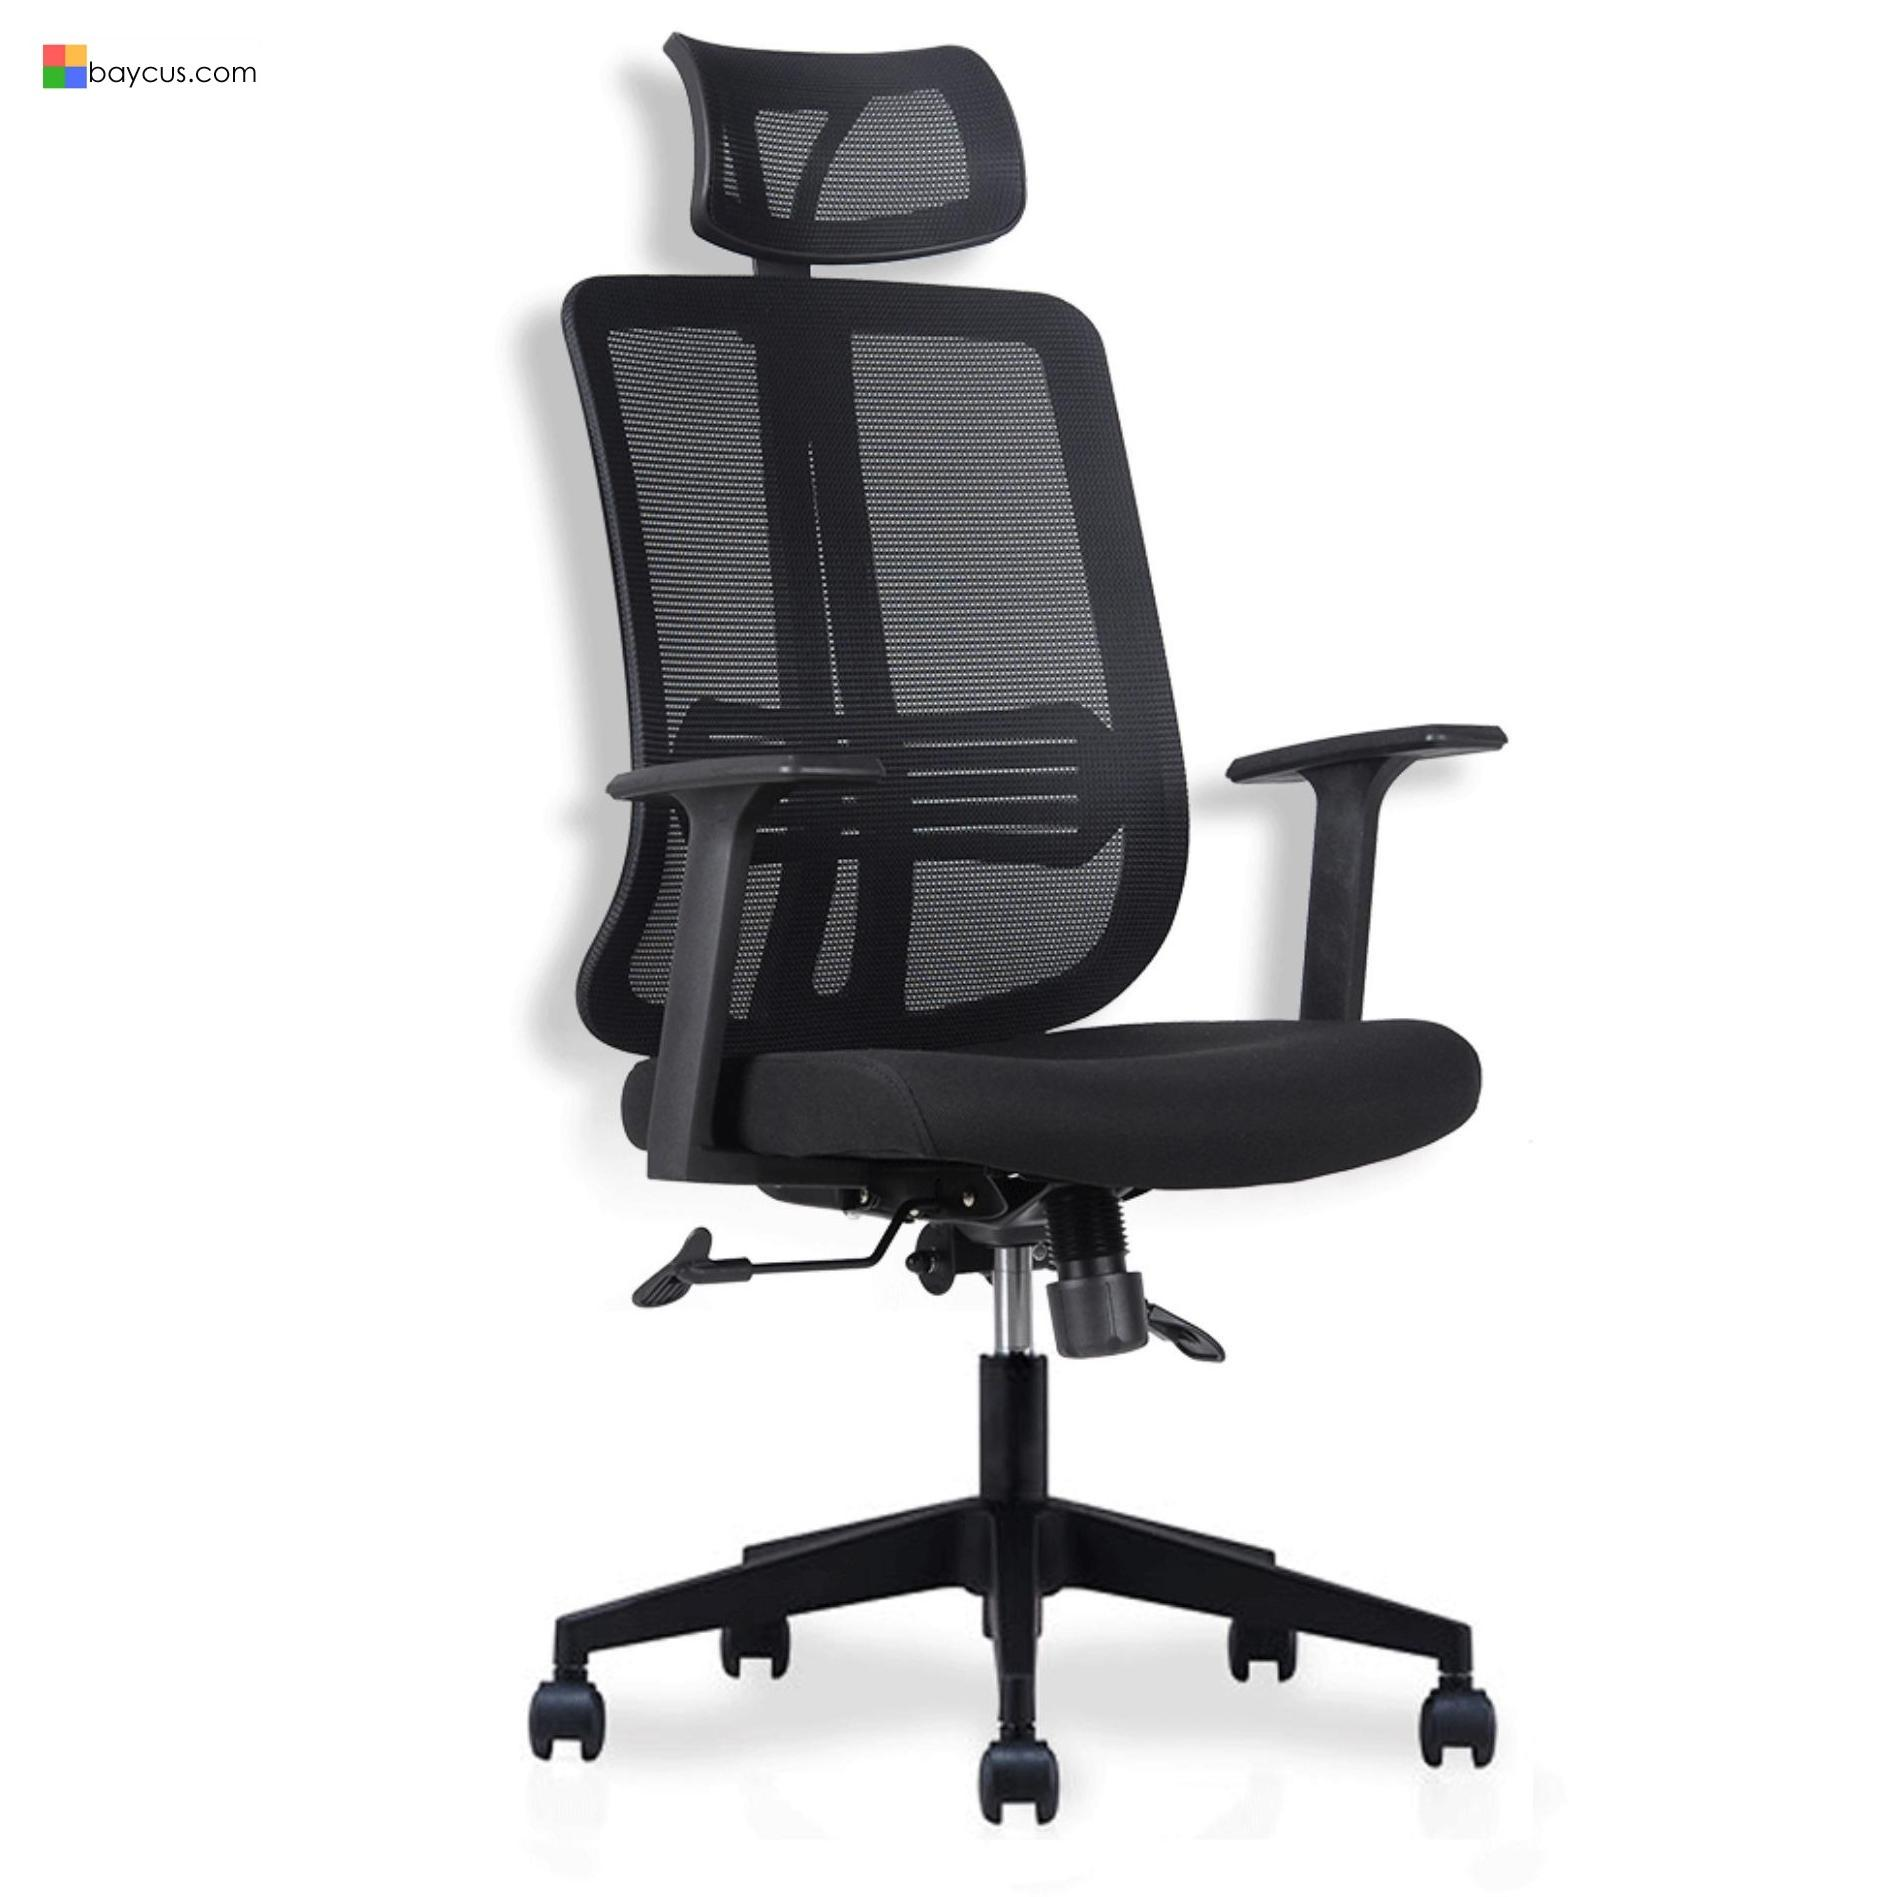 Ergonomic Mesh Office Chair  Model: JADE  Office Mesh Chair  Net Office Chair with Adjustable Headrest and Armrest  Office Chair able to tilt at multiple angle